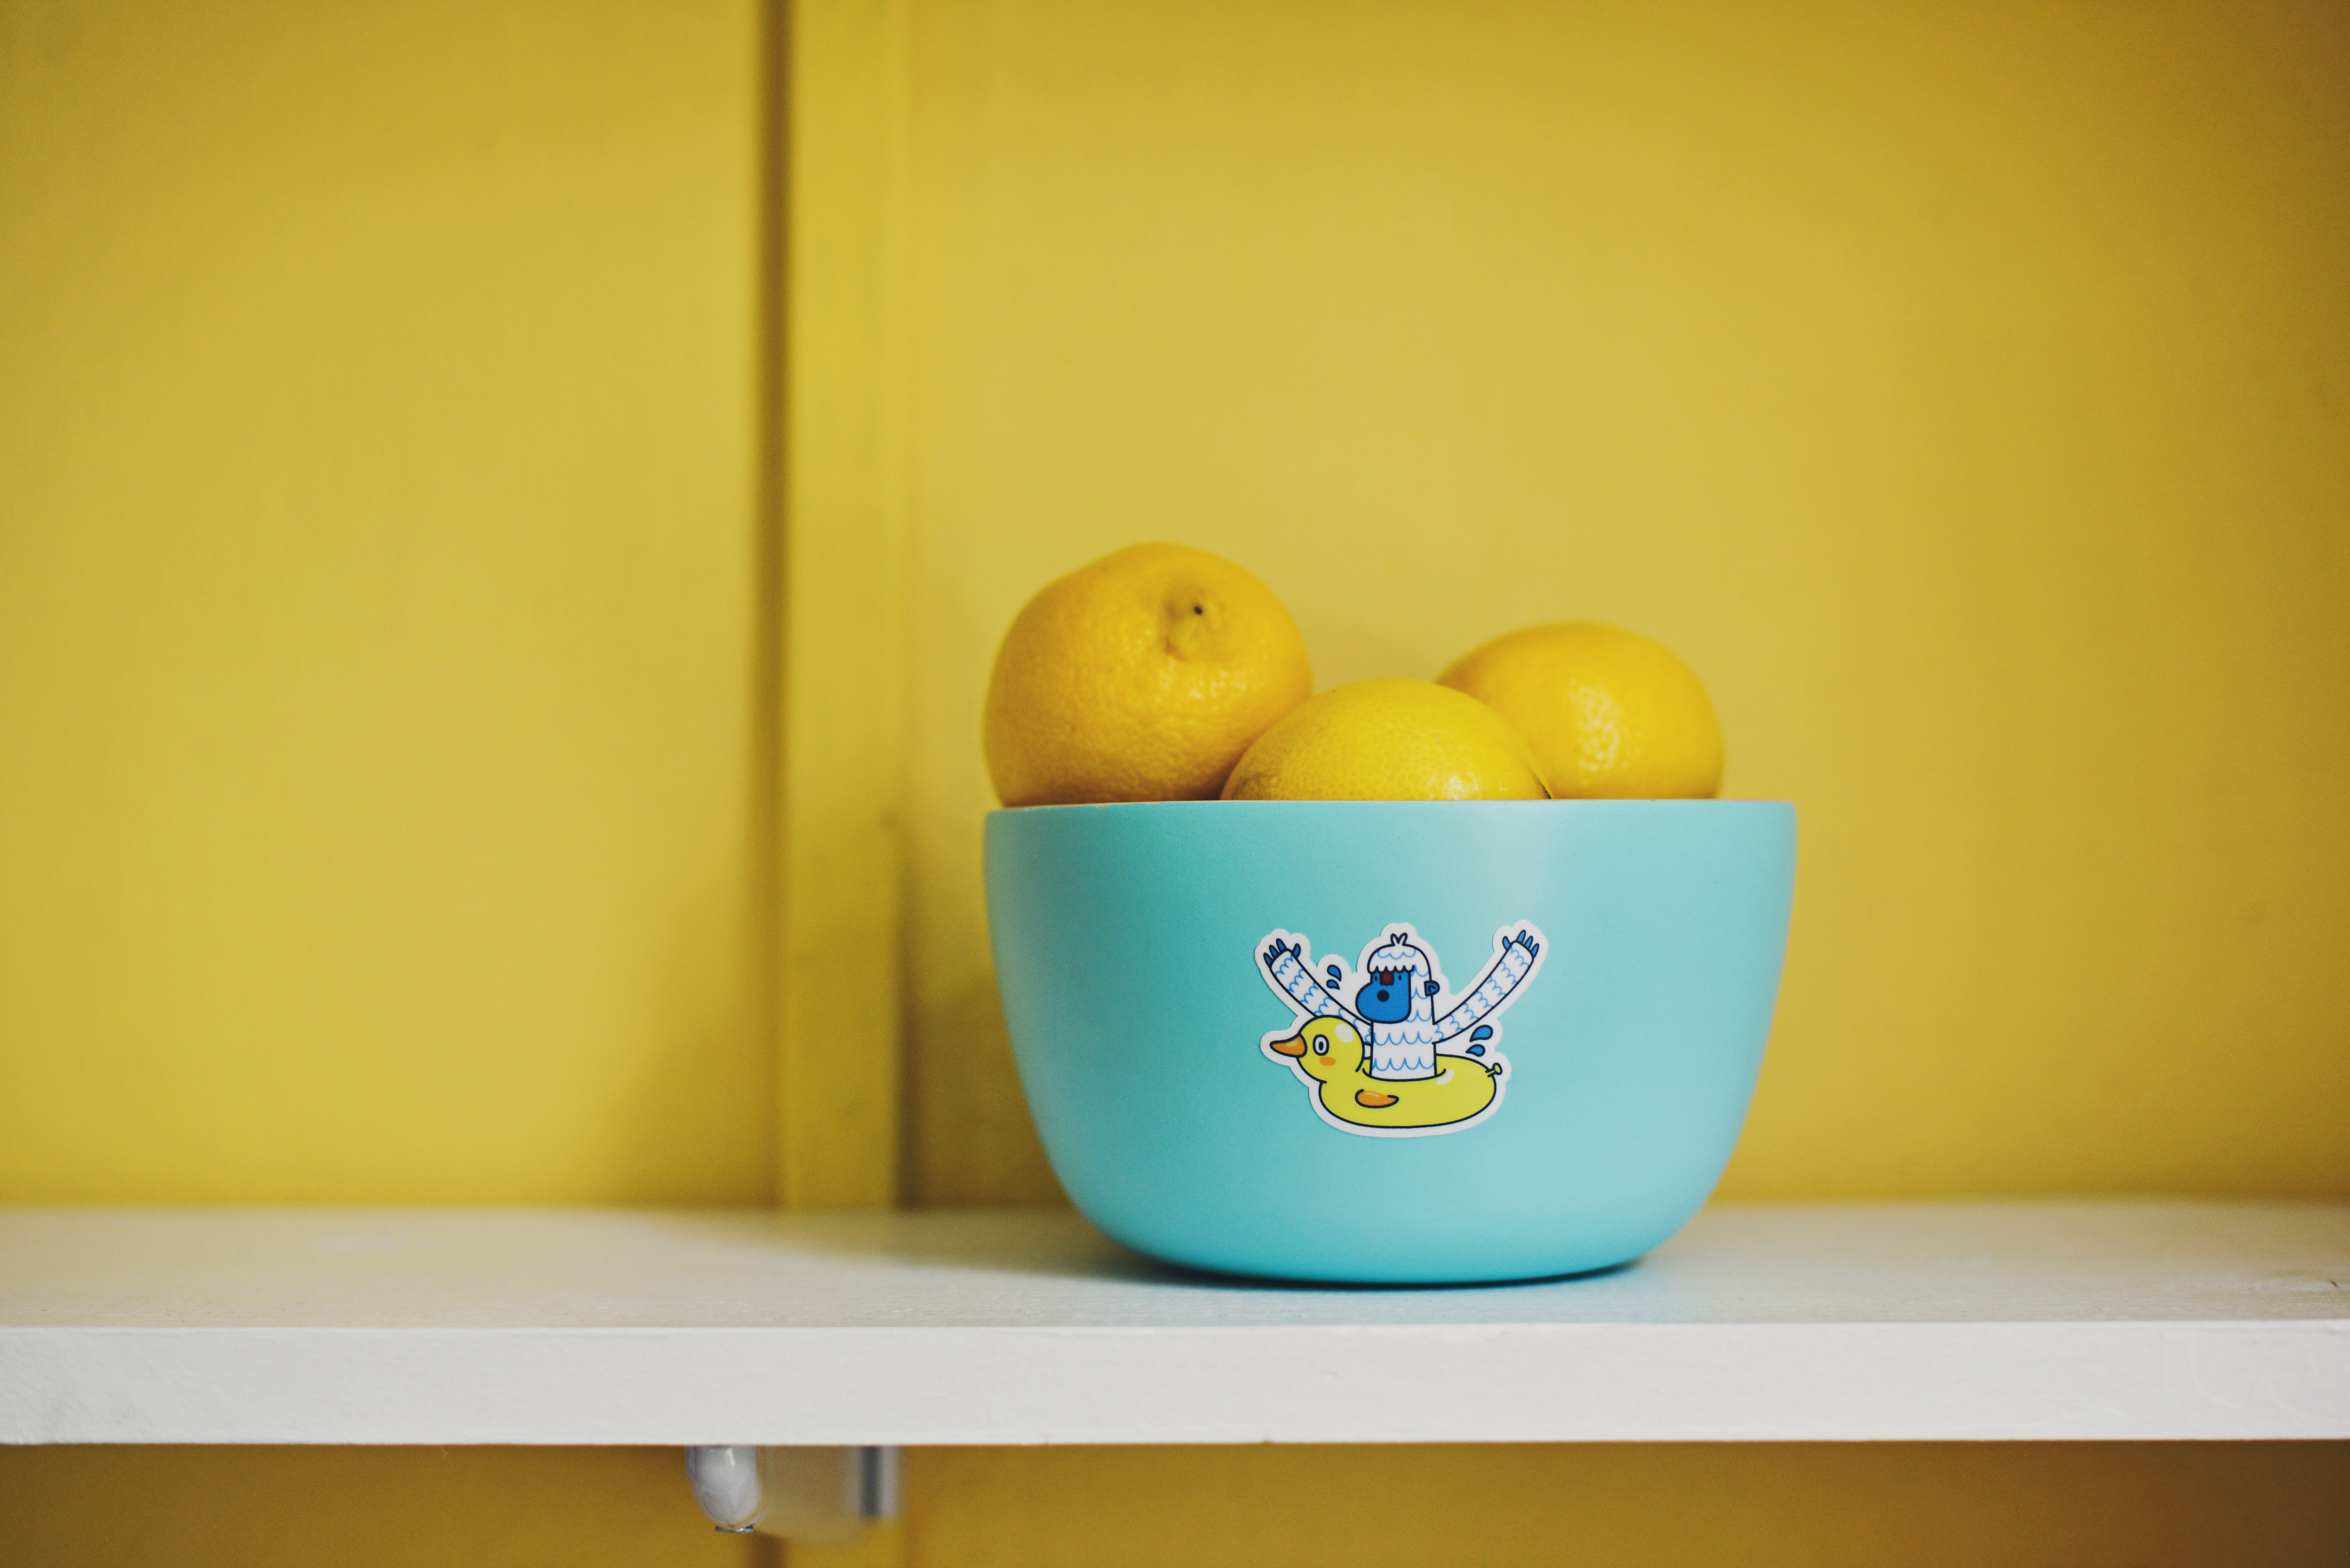 Lemons in a blue bowl with a sticker on it against a yellow wall